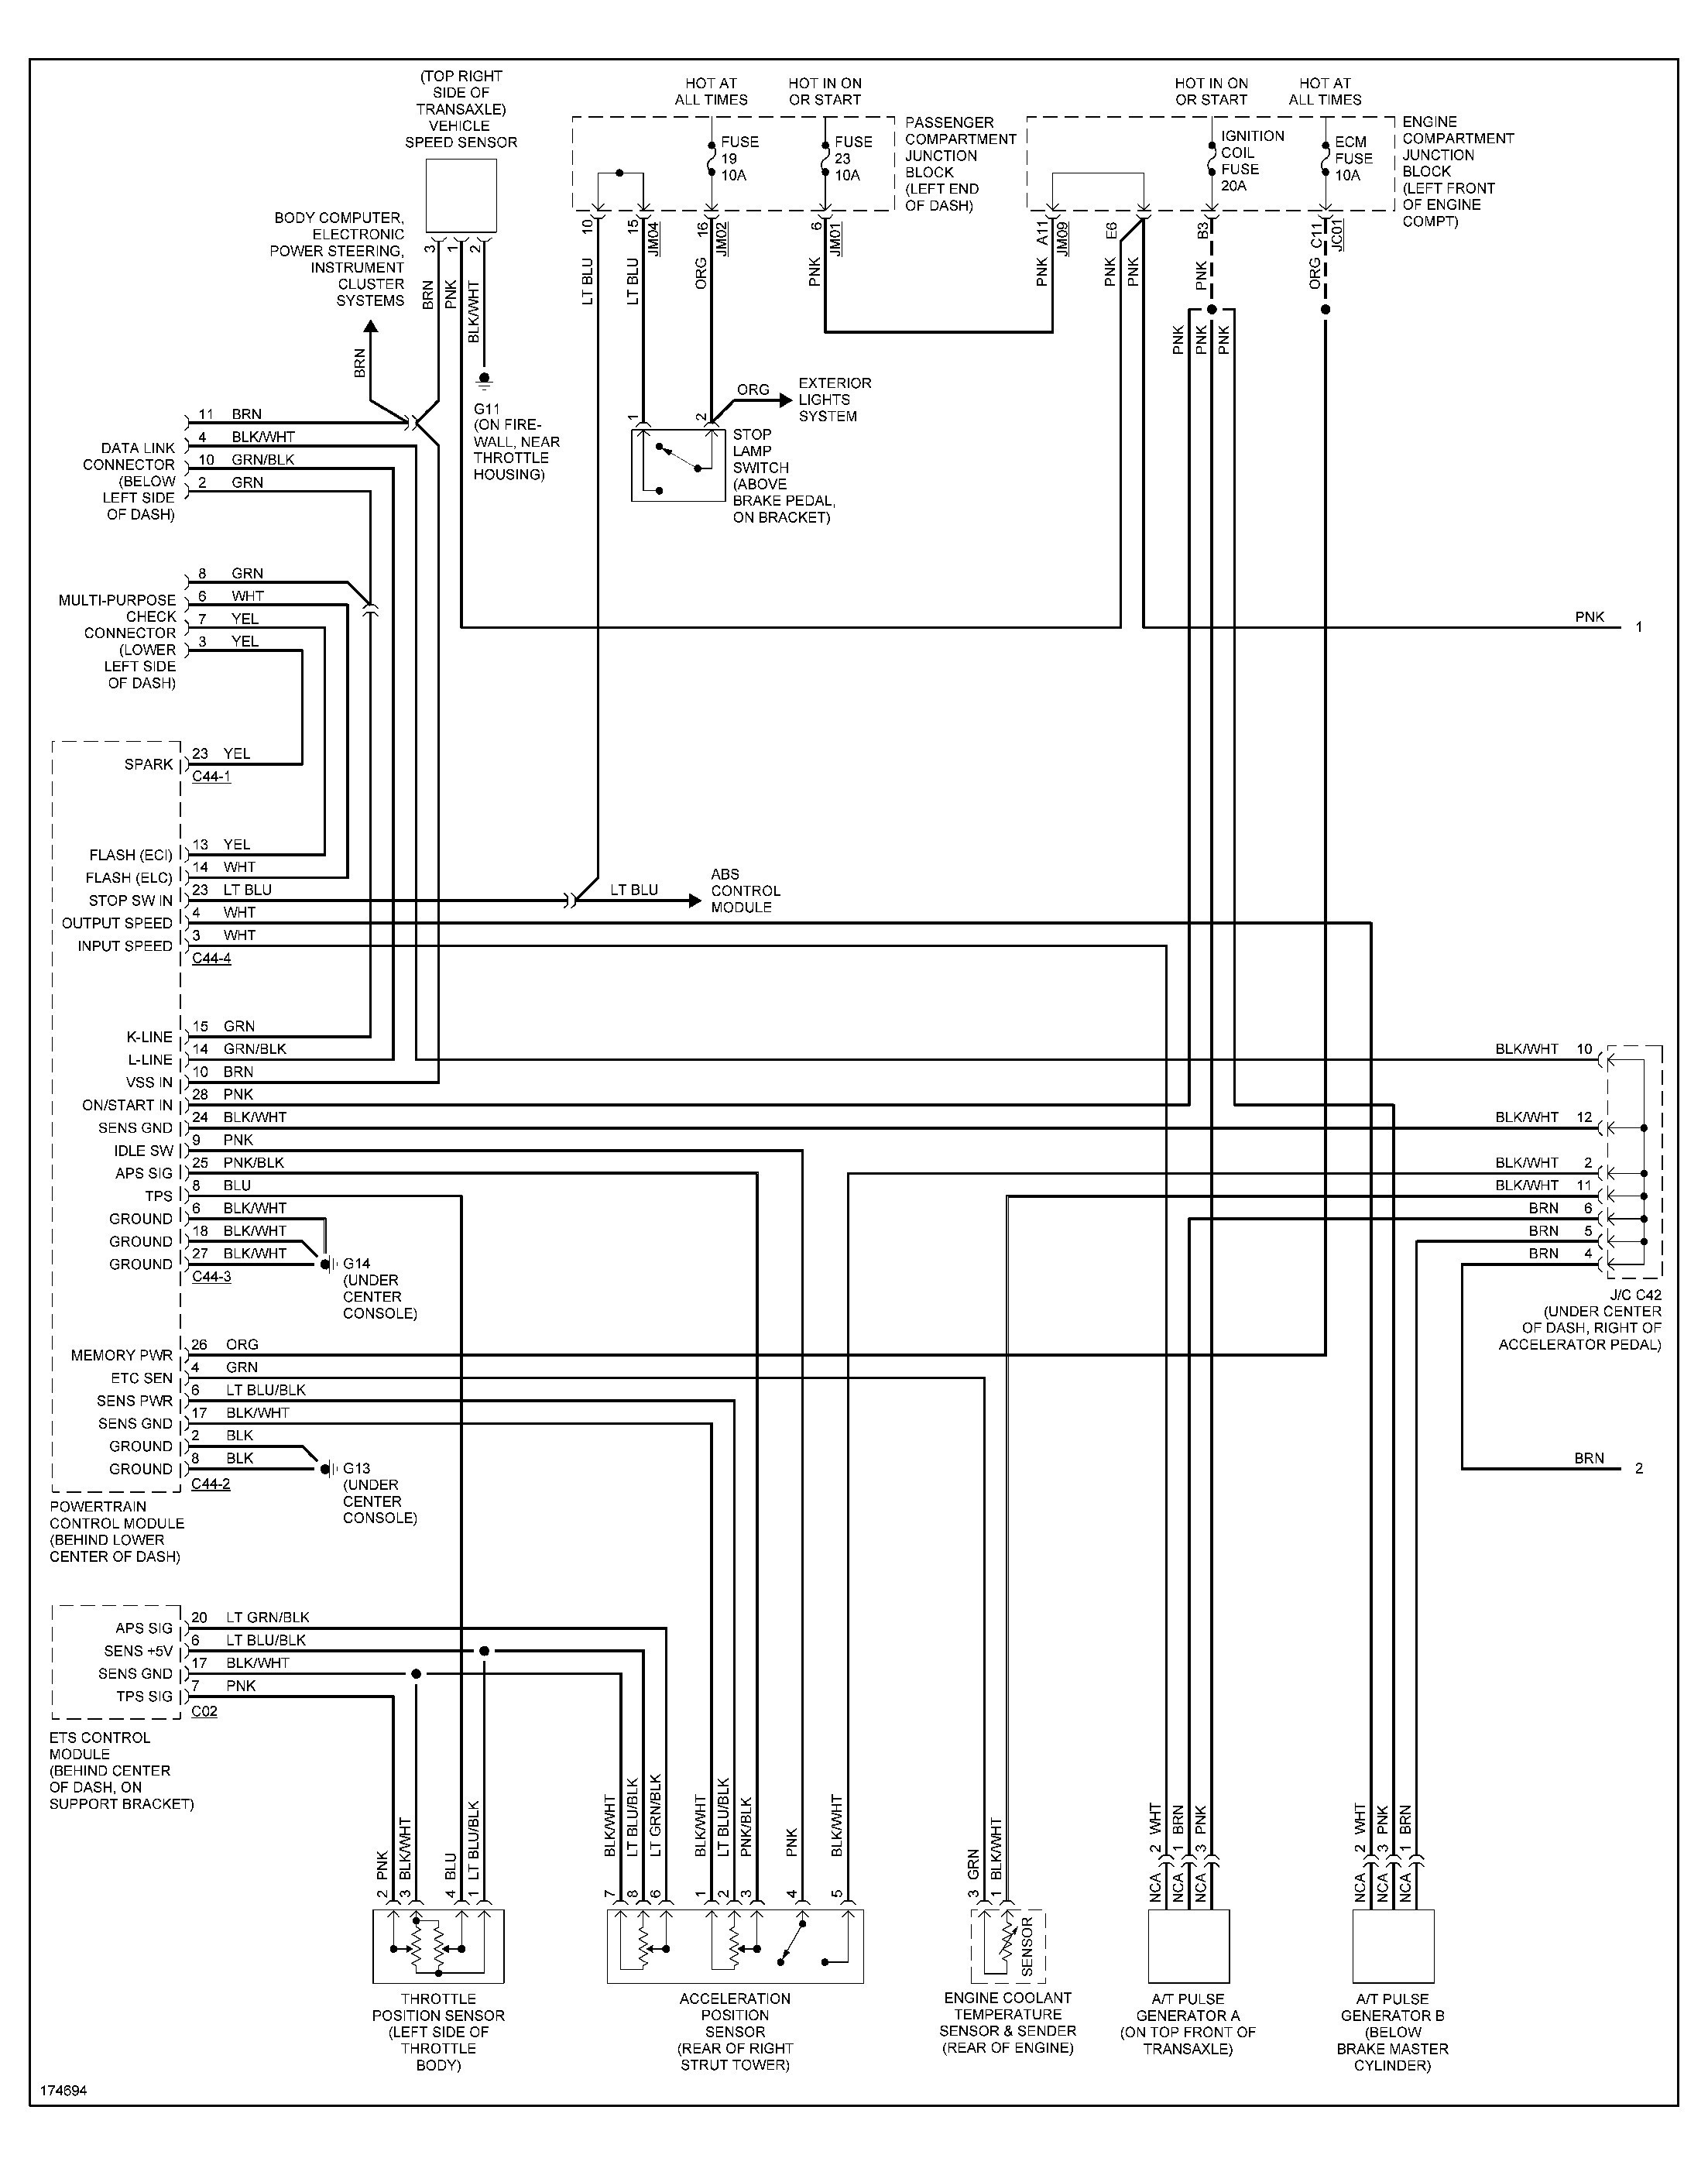 2005 Hyundai Santa Fe Wiring Diagrams - Wiring Diagram Text fur-writer -  fur-writer.albergoristorantecanzo.it | 2005 Hyundai Santa Fe Engine Diagram |  | fur-writer.albergoristorantecanzo.it